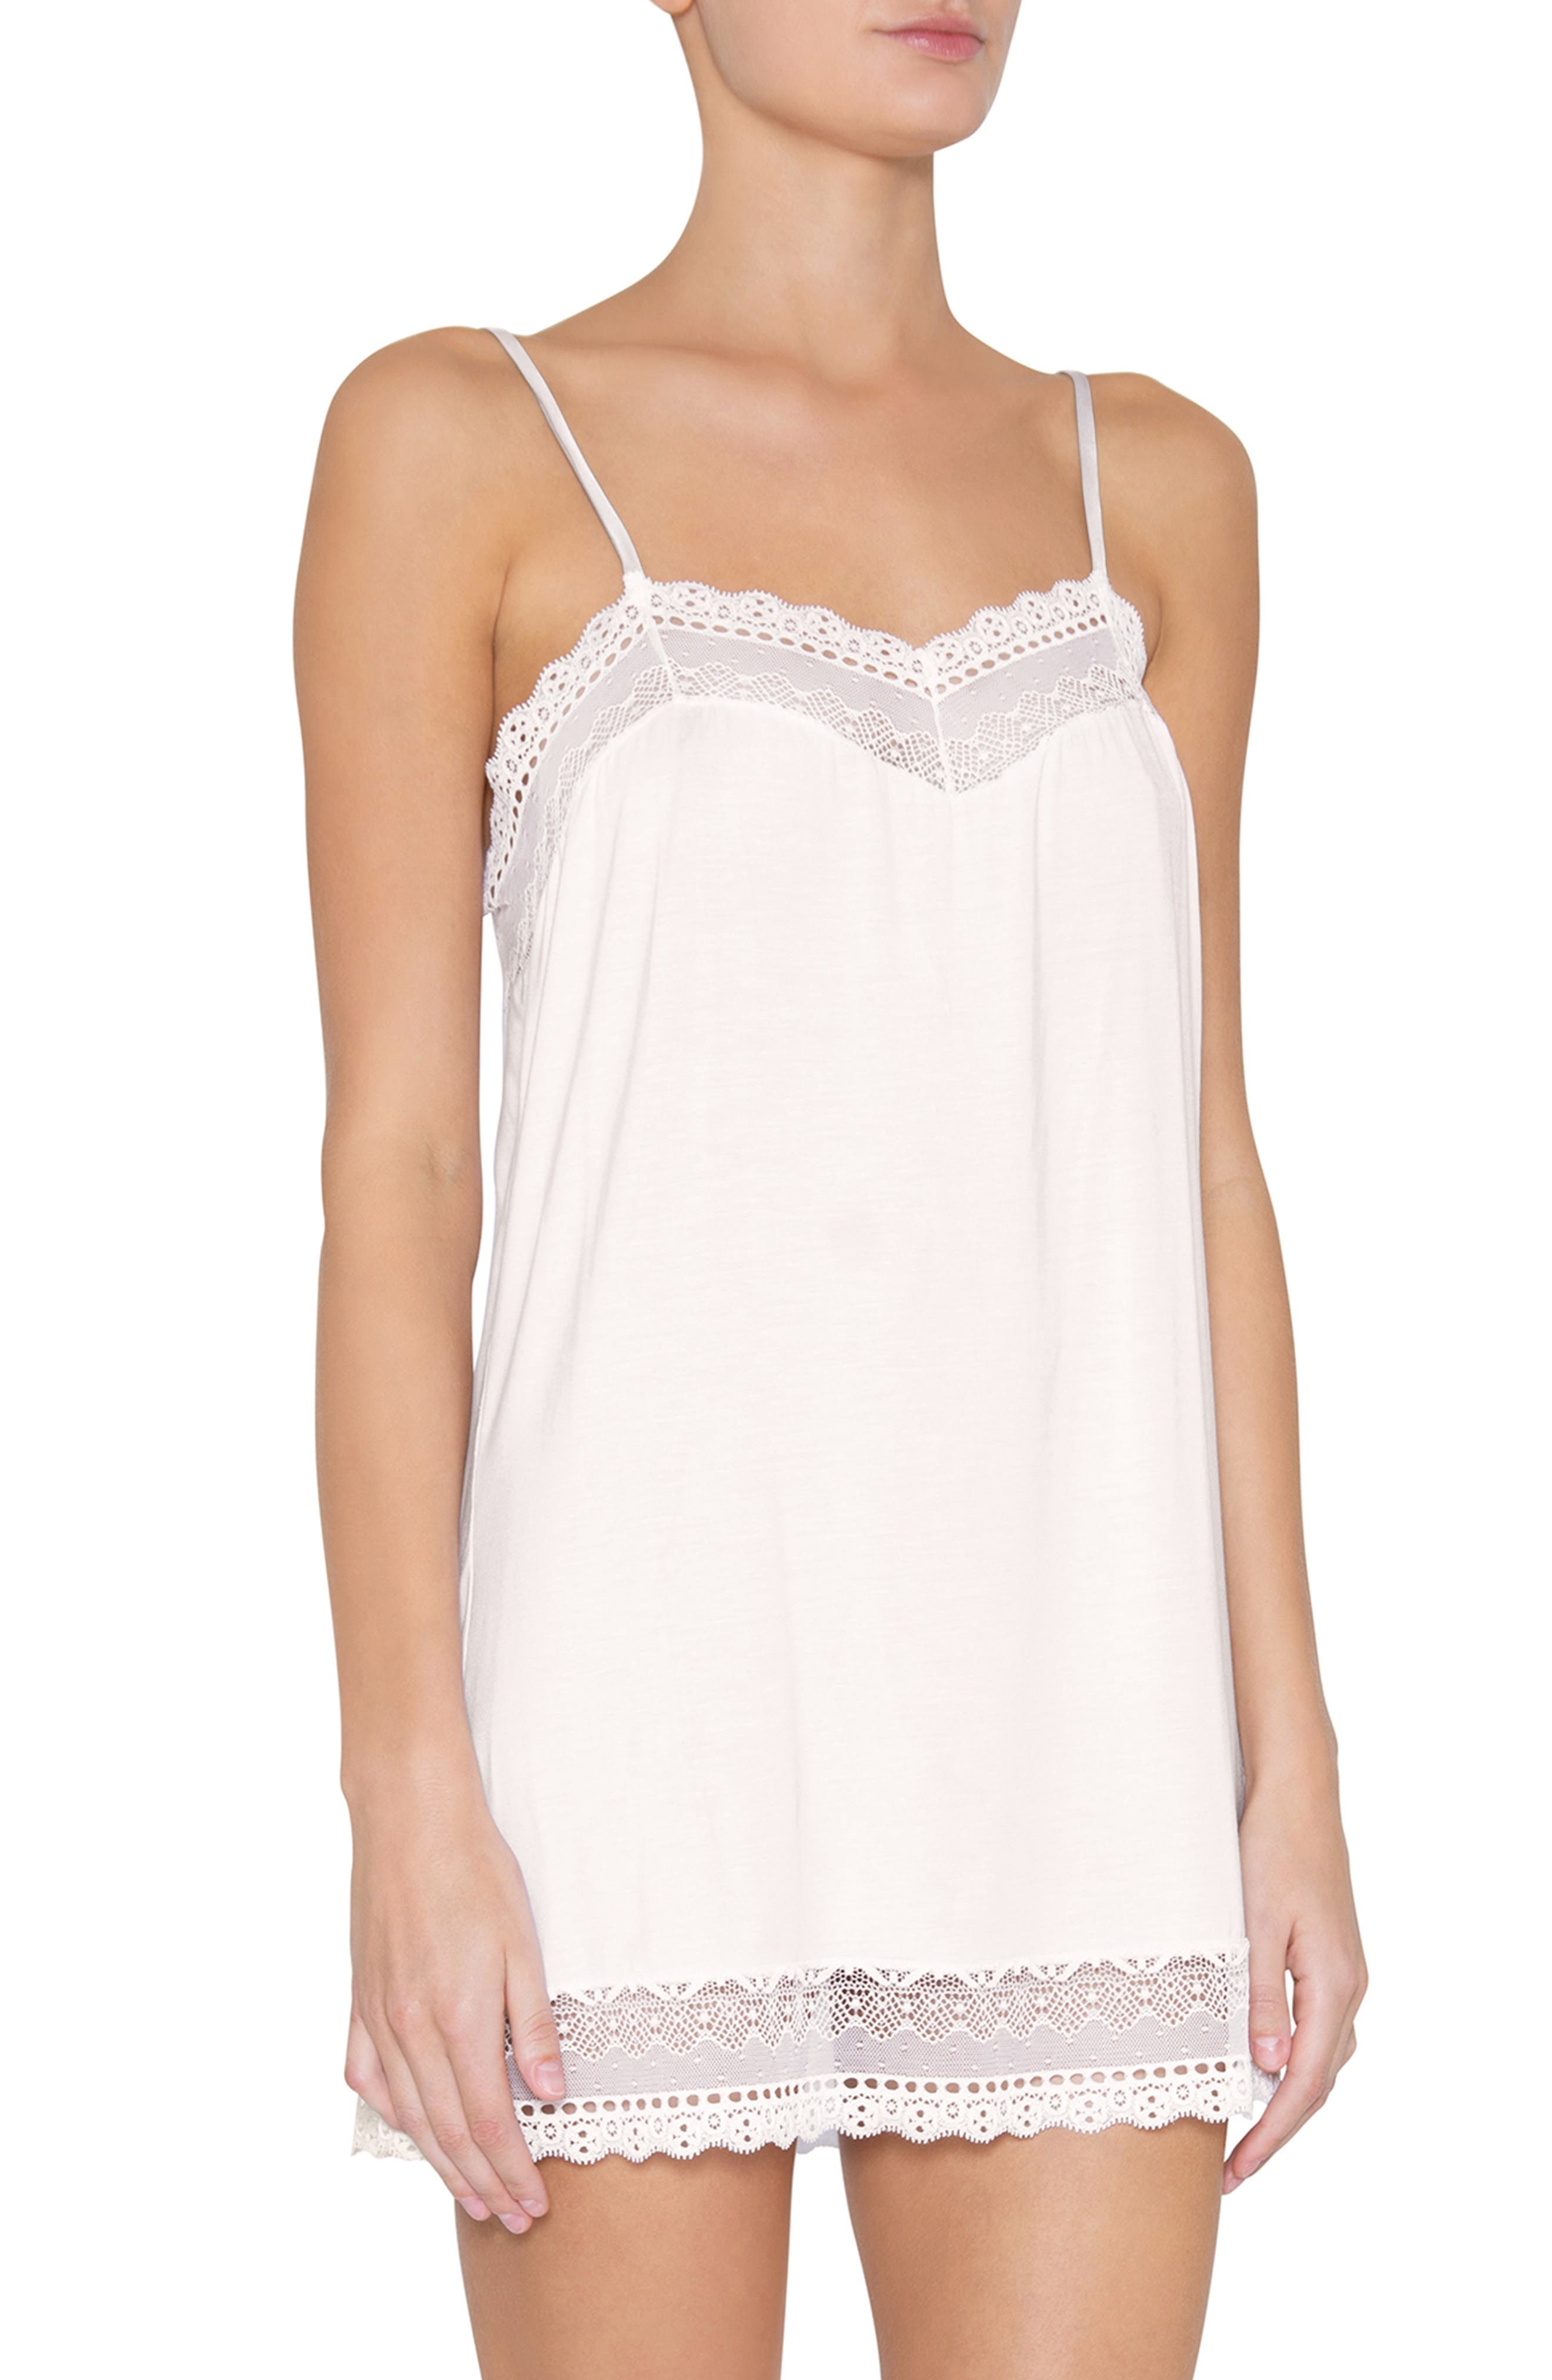 1920s Style Underwear, Lingerie, Nightgowns, Pajamas Womens Eberjey Lucie Sweetie Chemise Size Large - White $86.00 AT vintagedancer.com